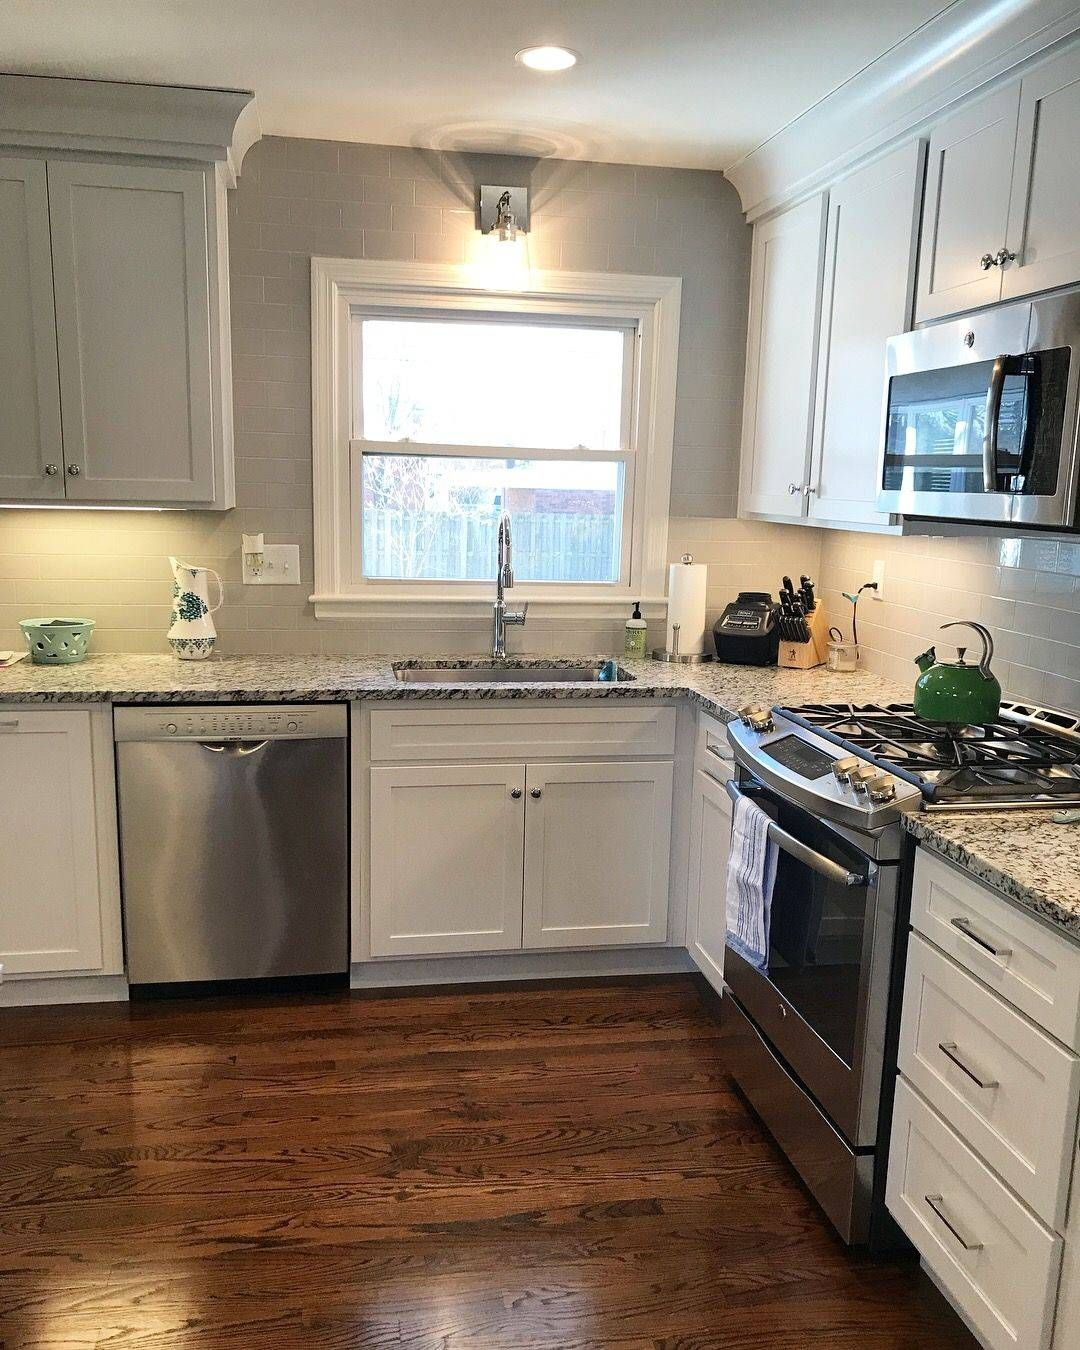 5 Majestic Kitchen Remodel Durham Nc Ideas 5 Complete Clever Tips Kitchen Re In 2020 Cheap Kitchen Remodel Farmhouse Kitchen Remodel Kitchen Remodel Countertops